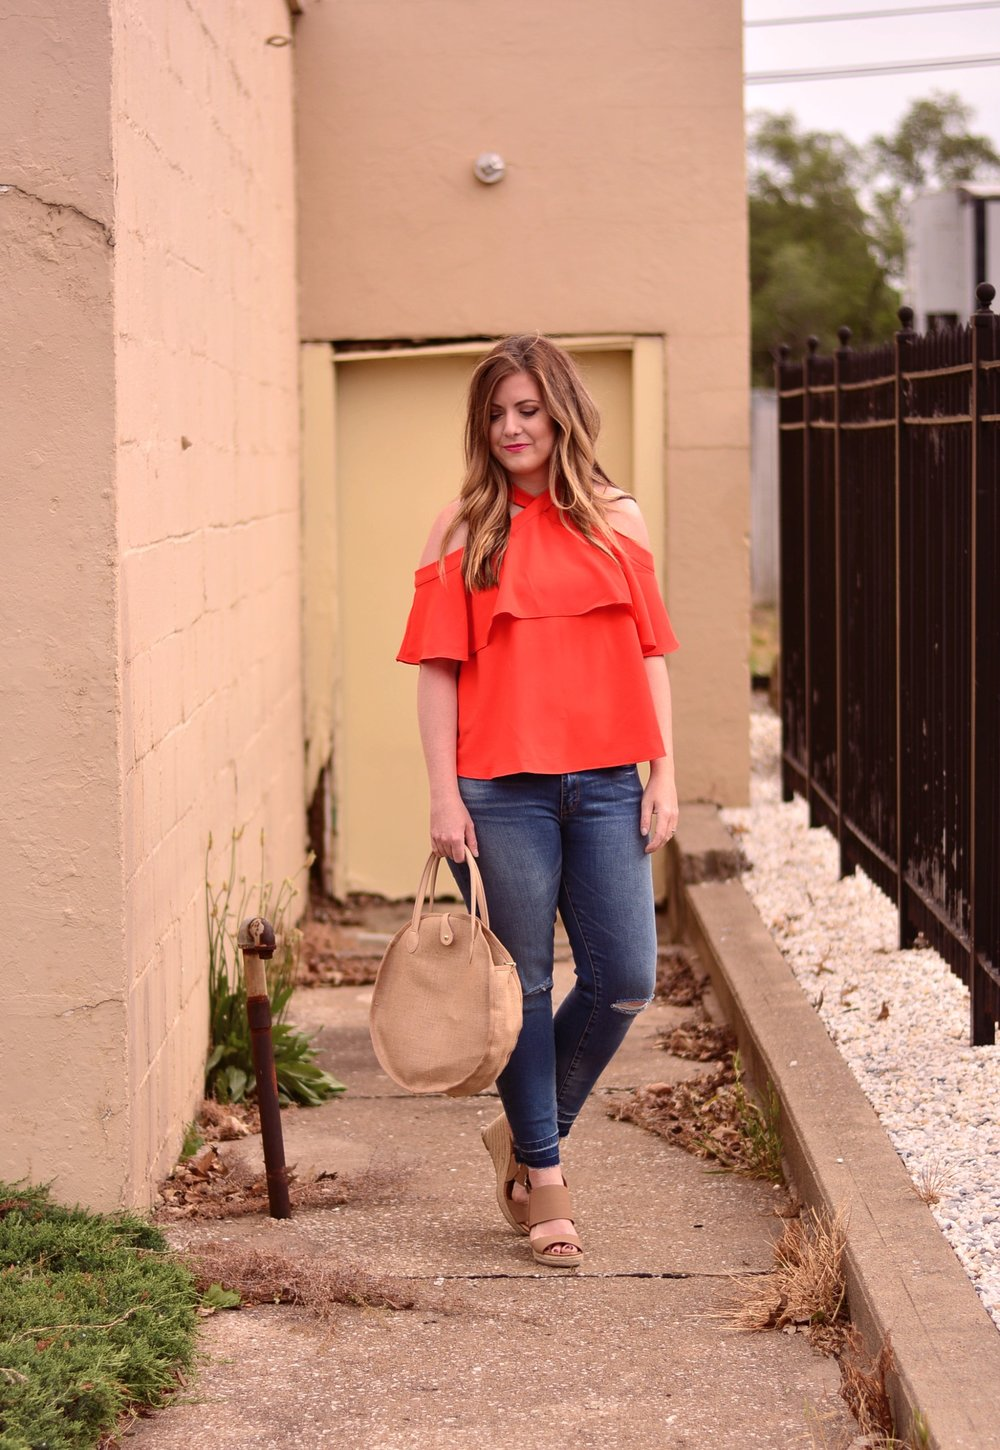 Red cold shoulder top outfit for summer